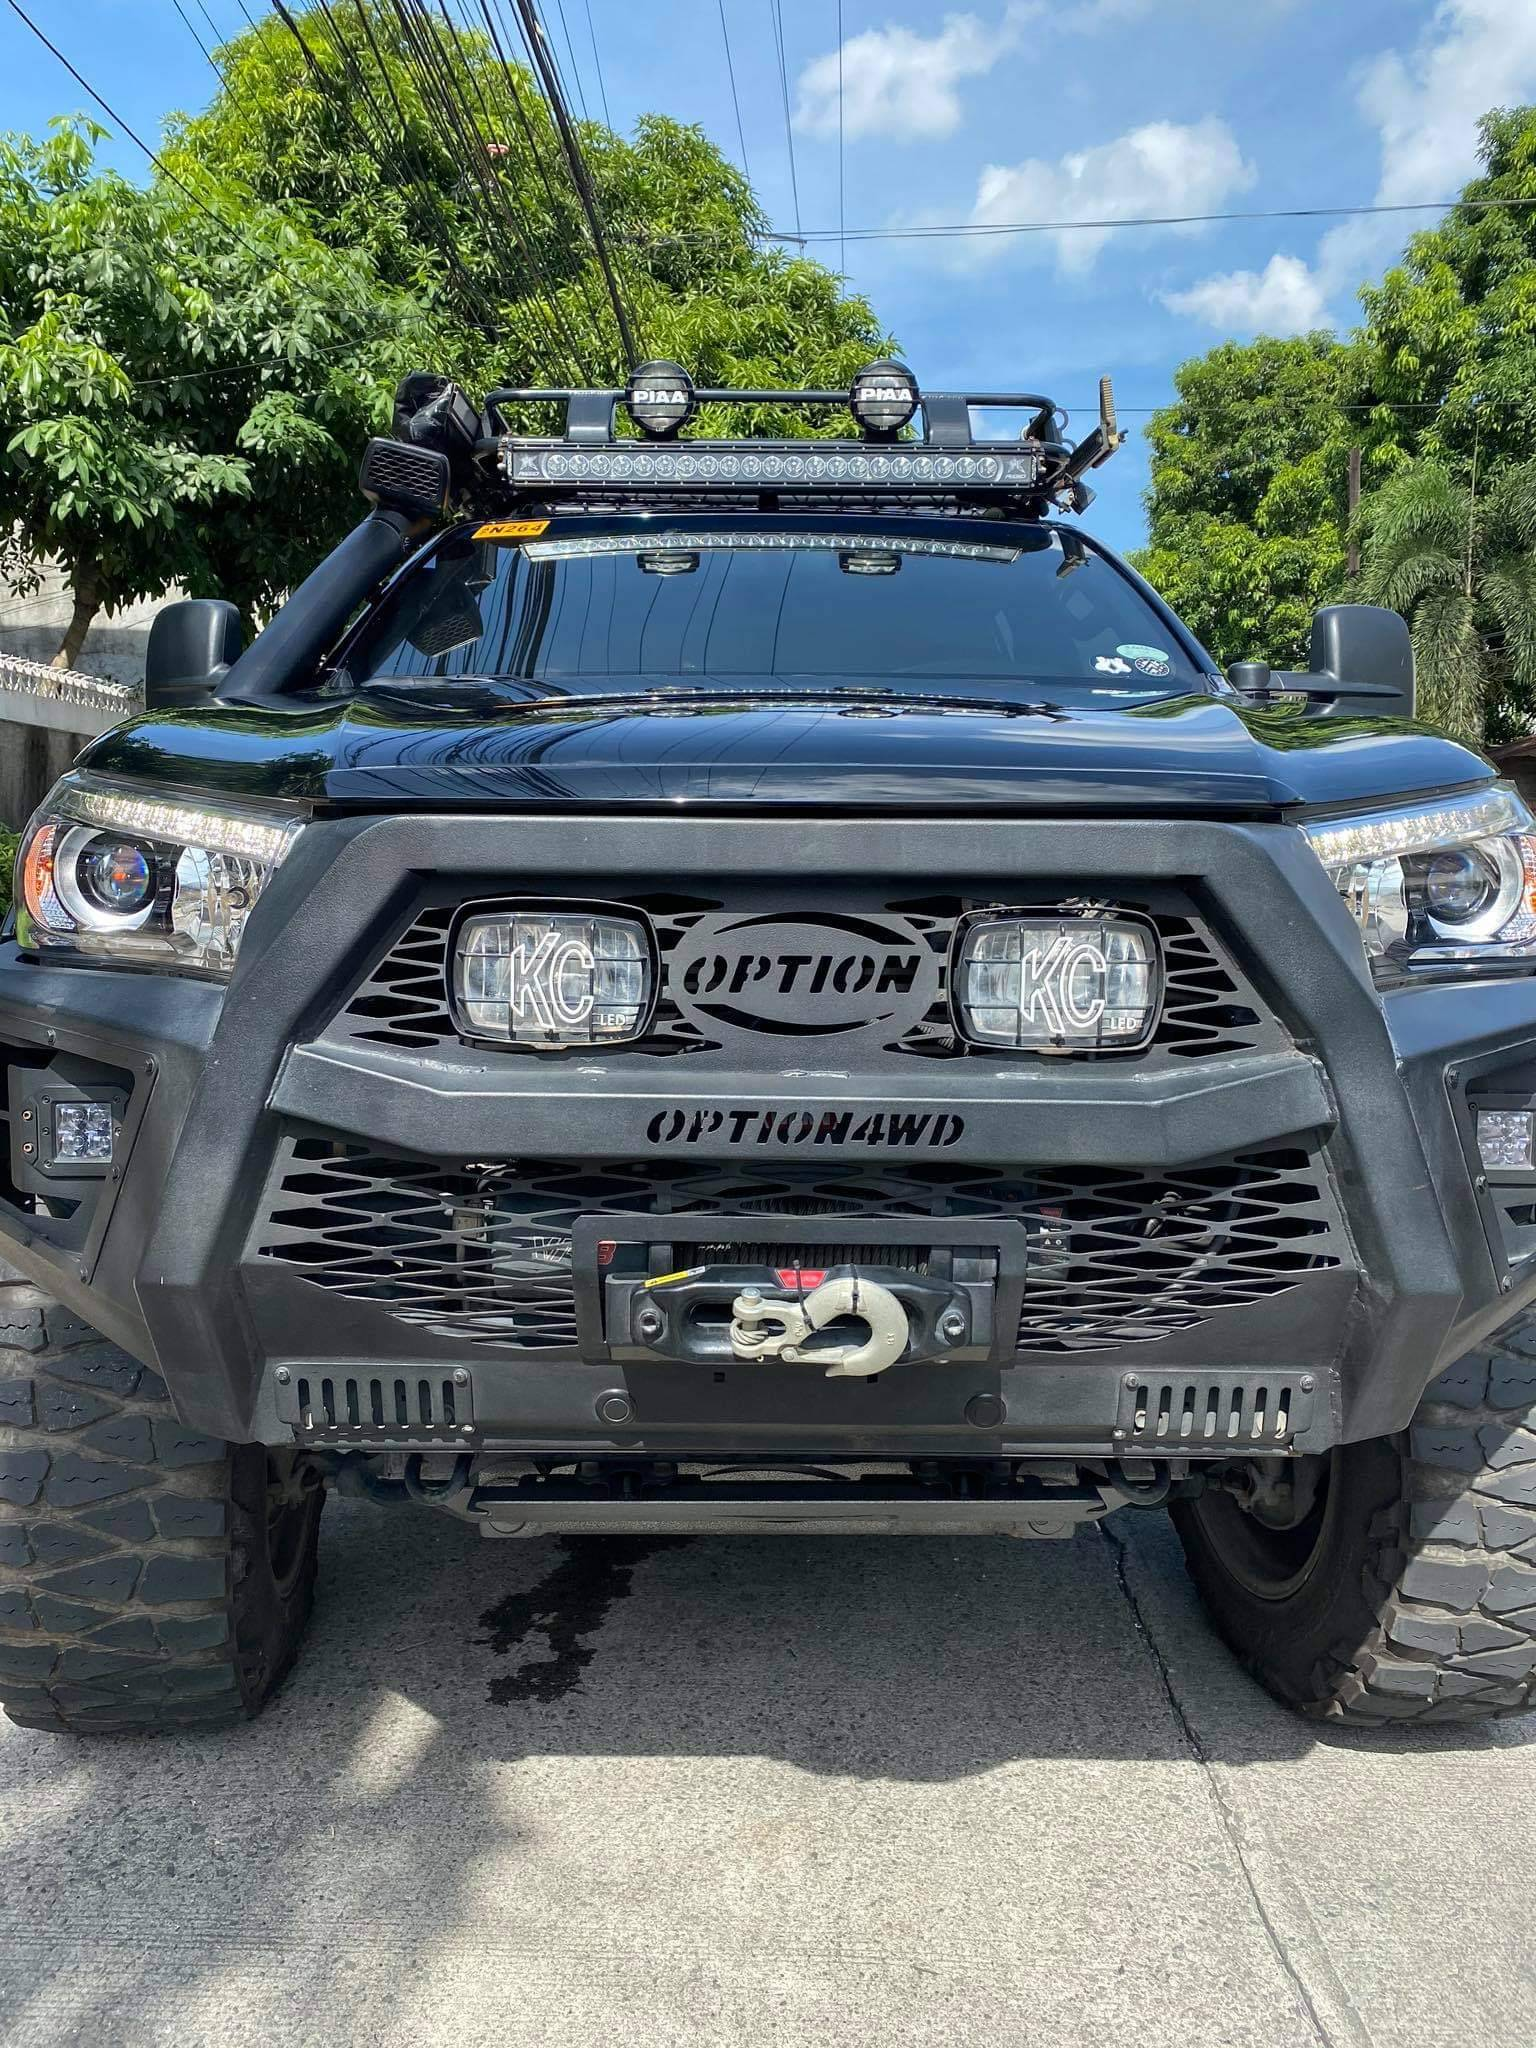 Ford Ranger Raptor 2021 Price List Philippines February Promos Specs Reviews